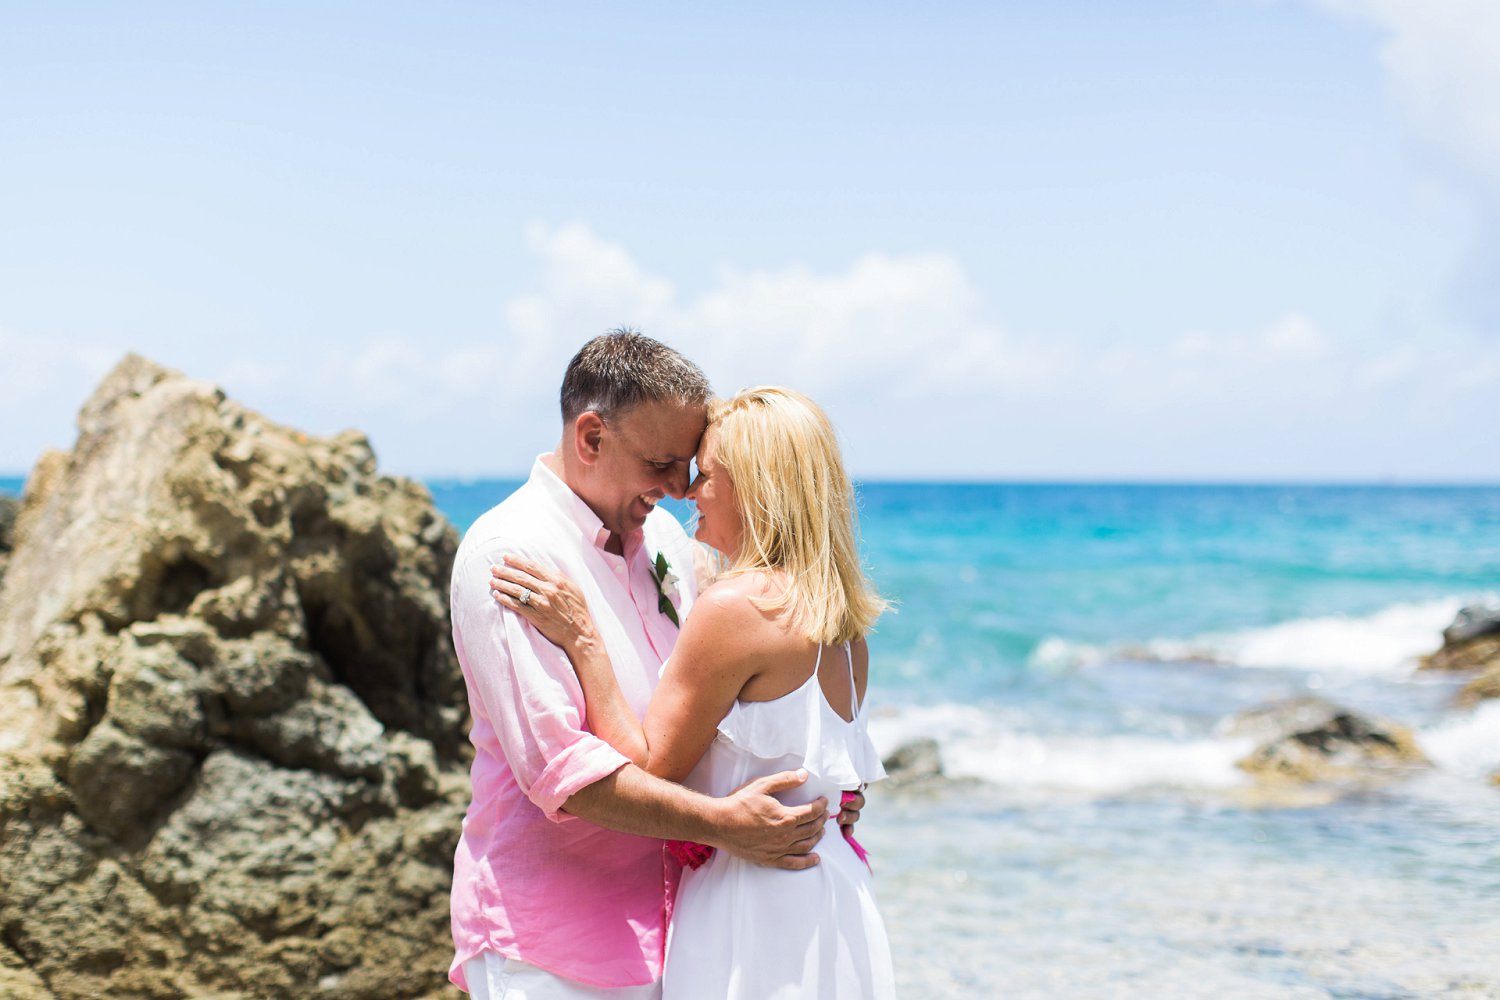 Beach vow renewal couple's portrait.